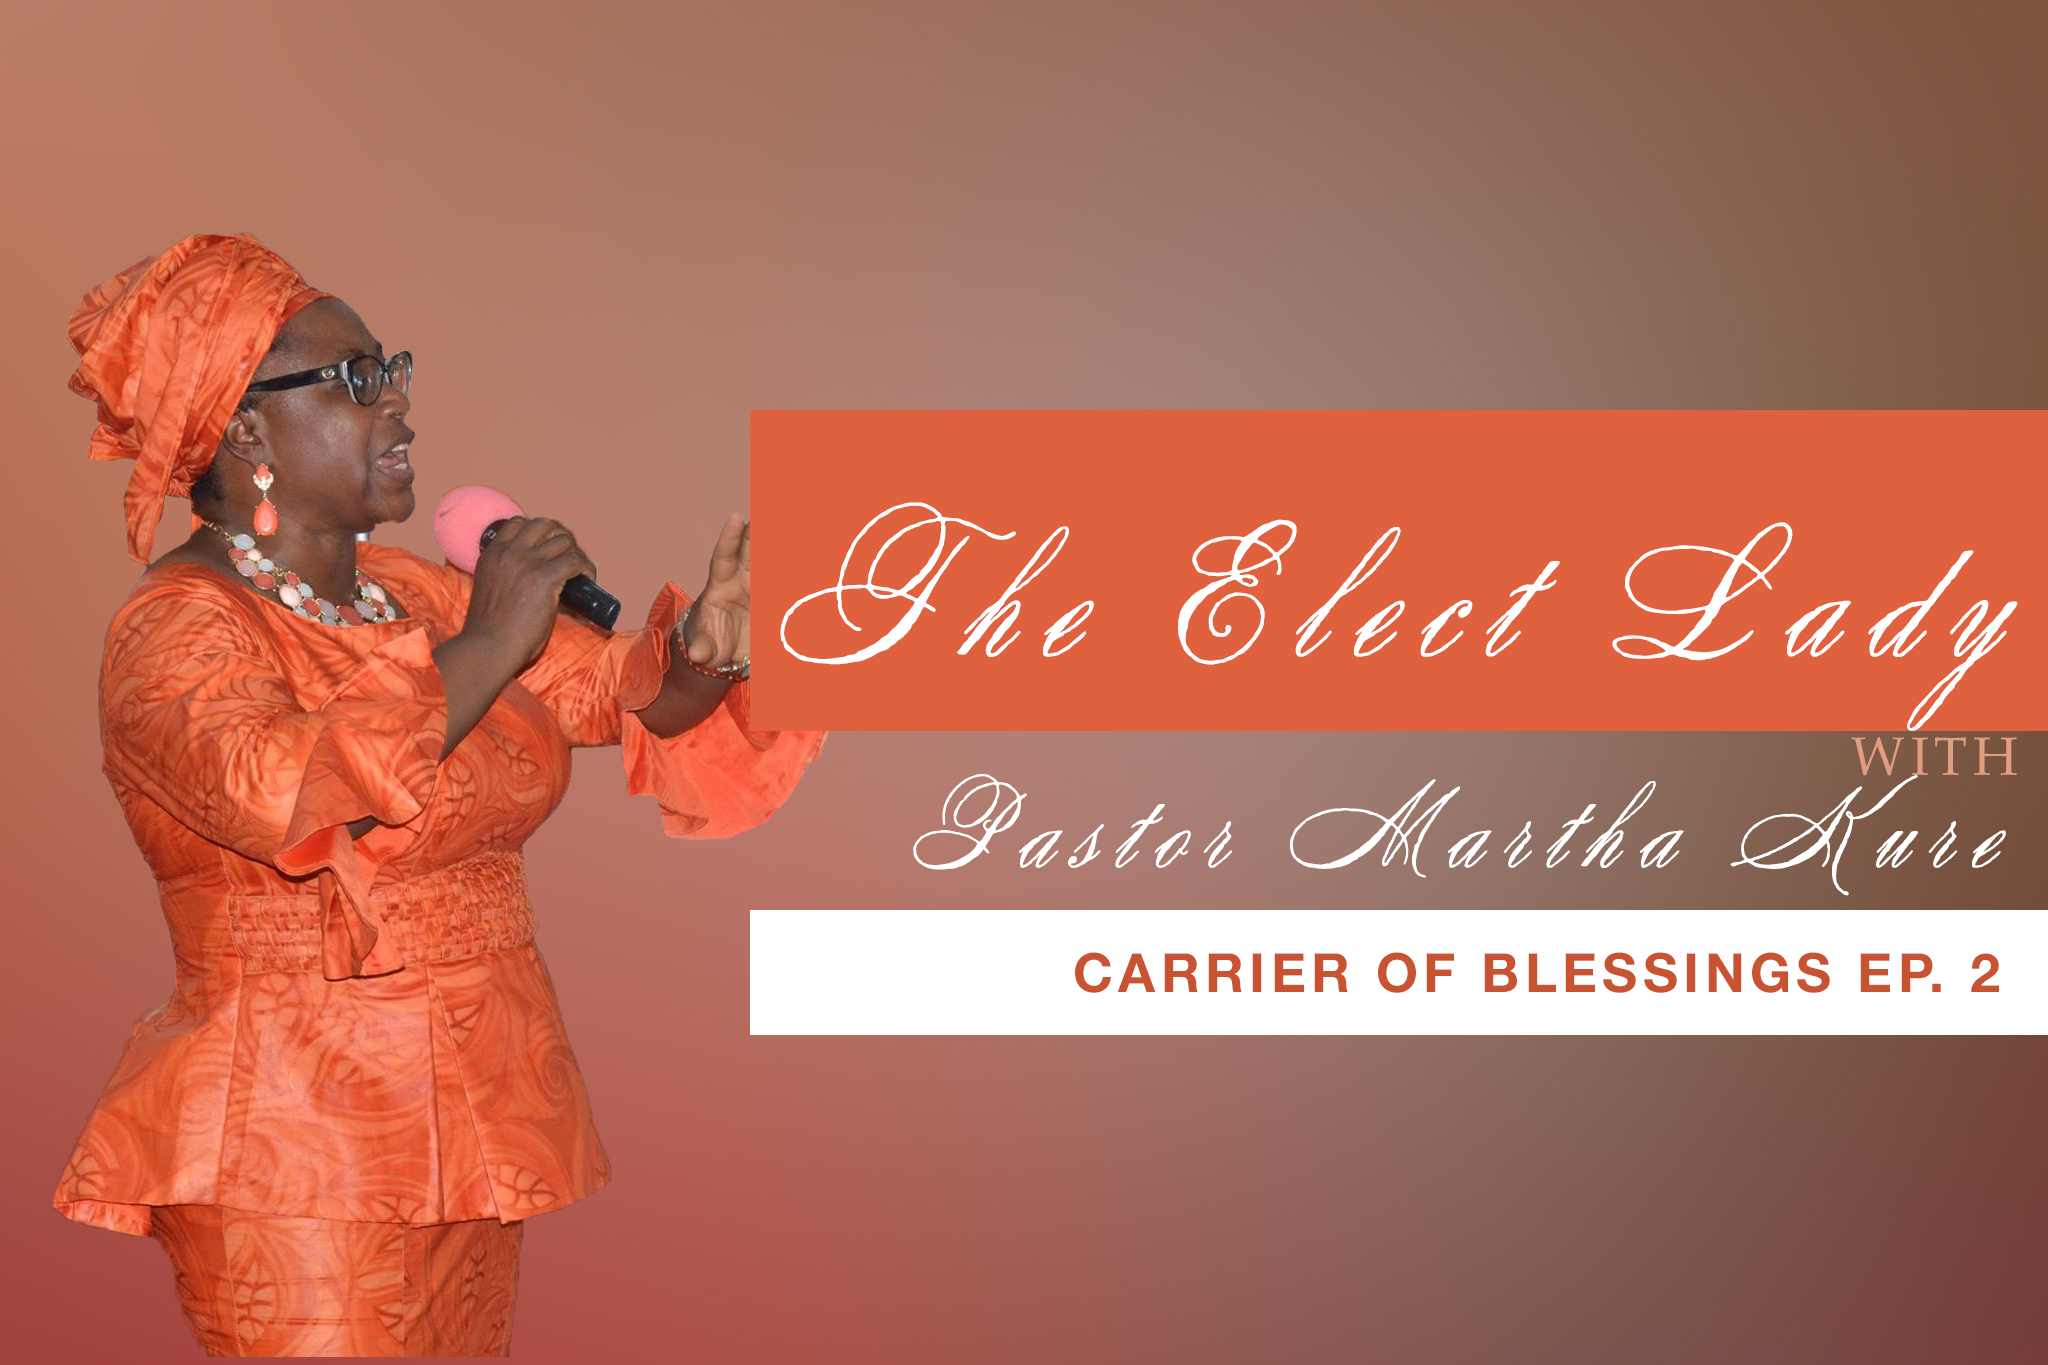 Carrier of Blessings II